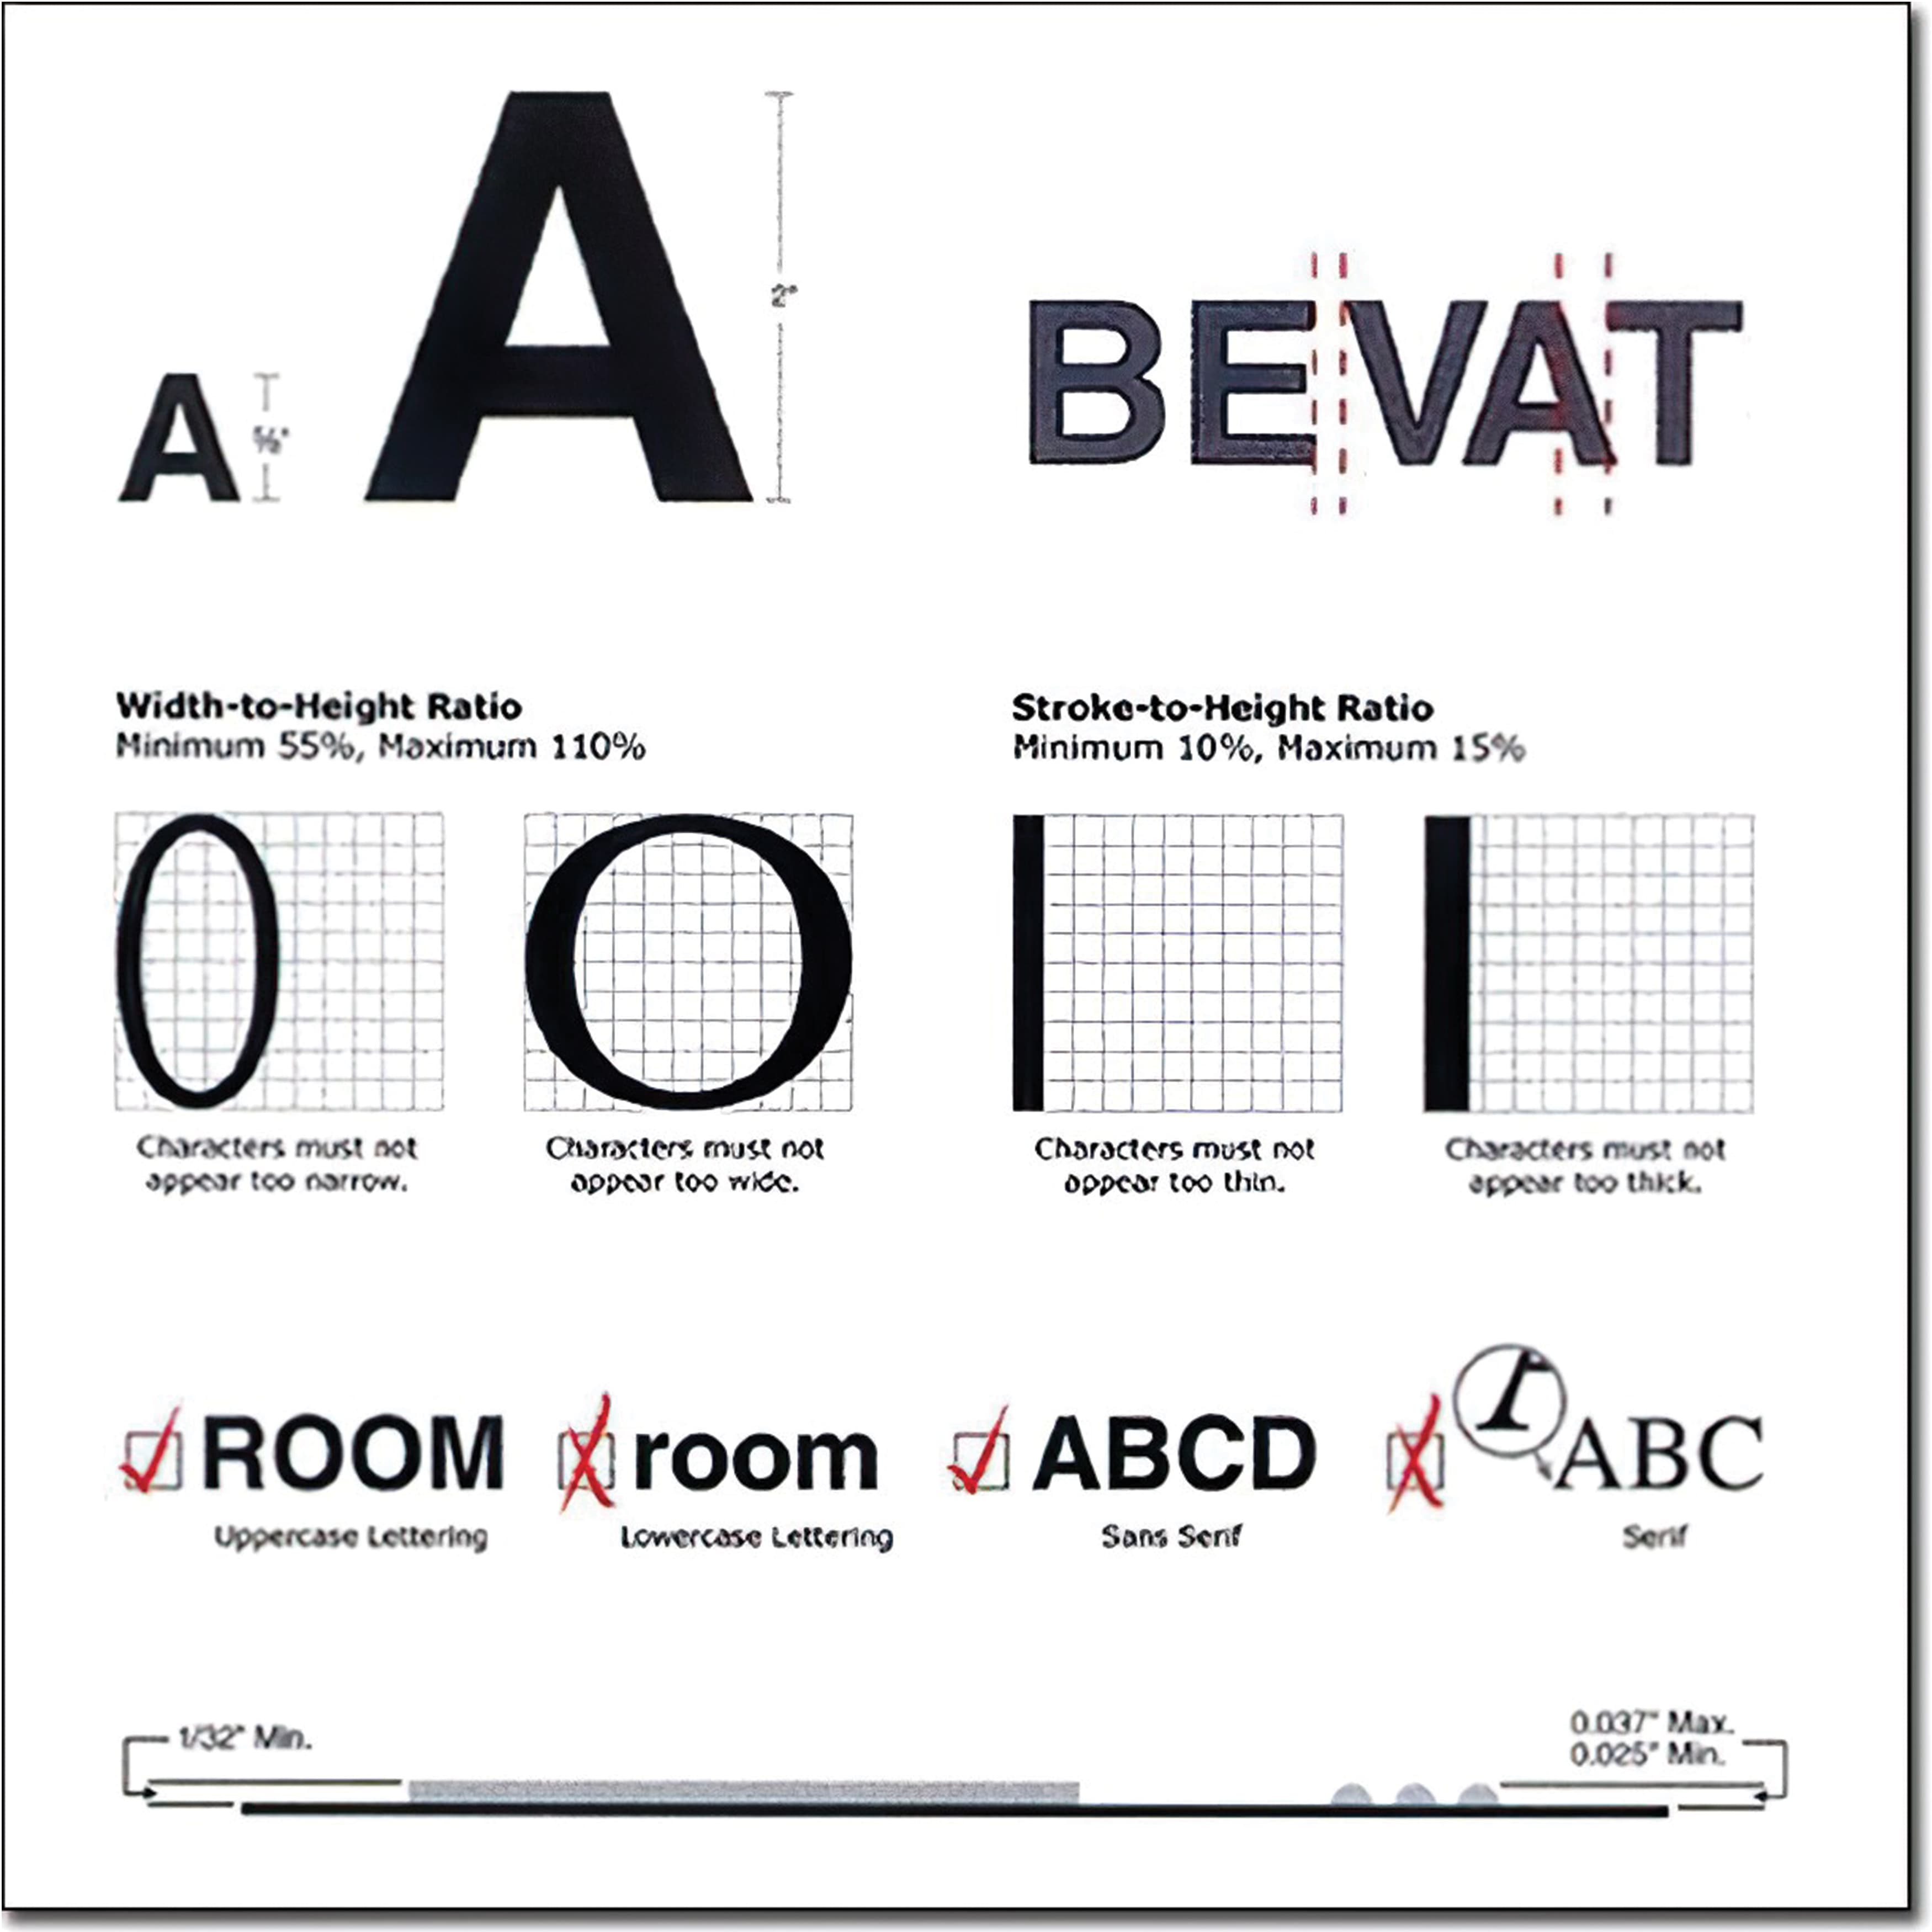 A diagram showing some ADA code requirements for signage plaques.